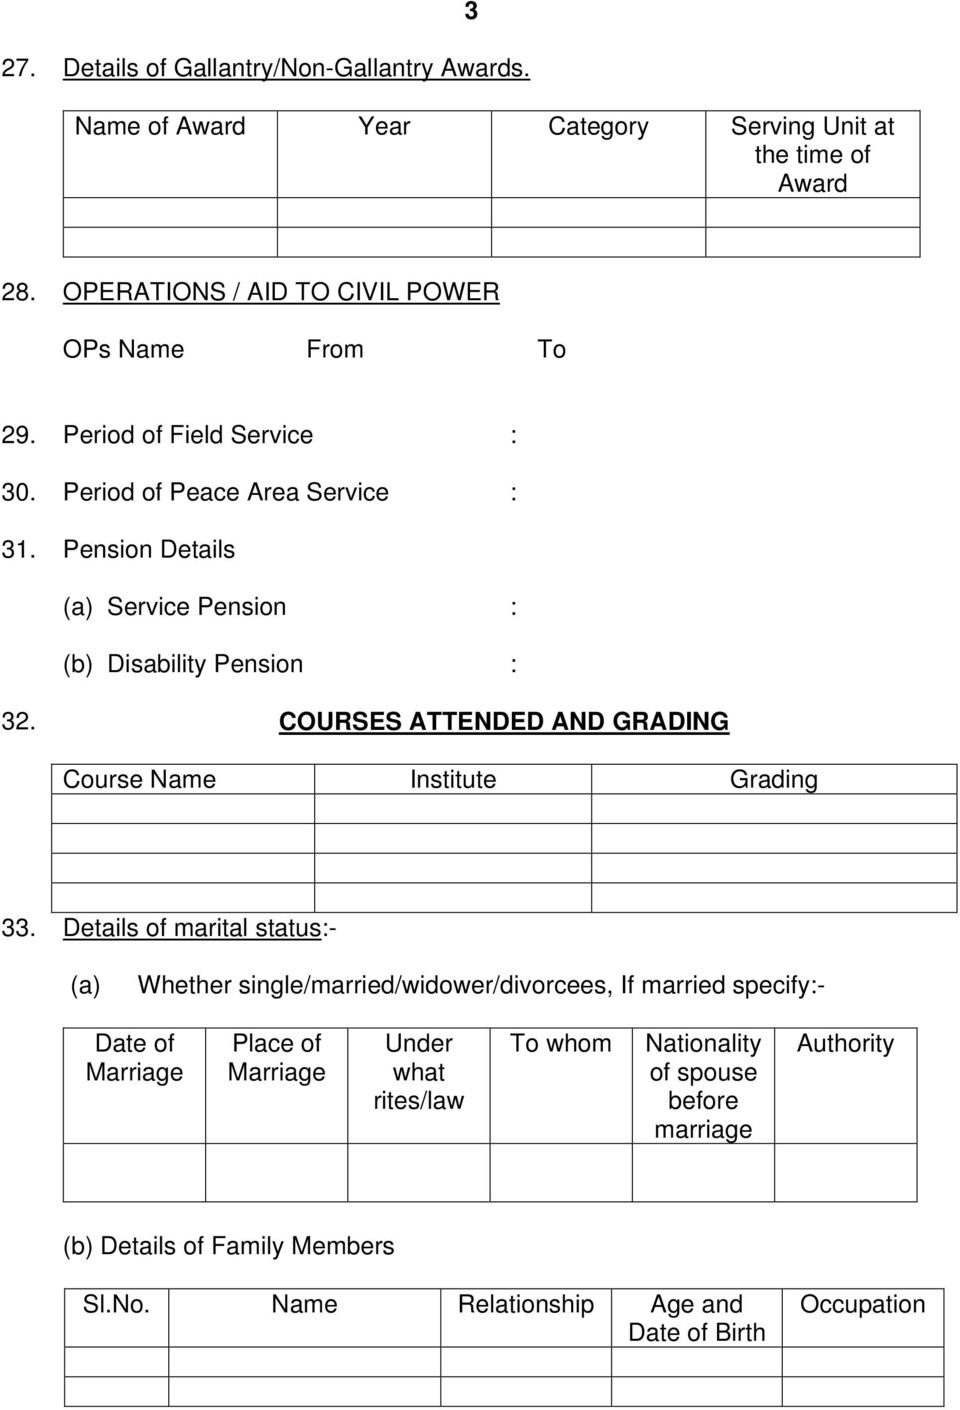 Pension Details (a) Service Pension (b) Disability Pension 32. COURSES ATTENDED AND GRADING Course Name Institute Grading 33.